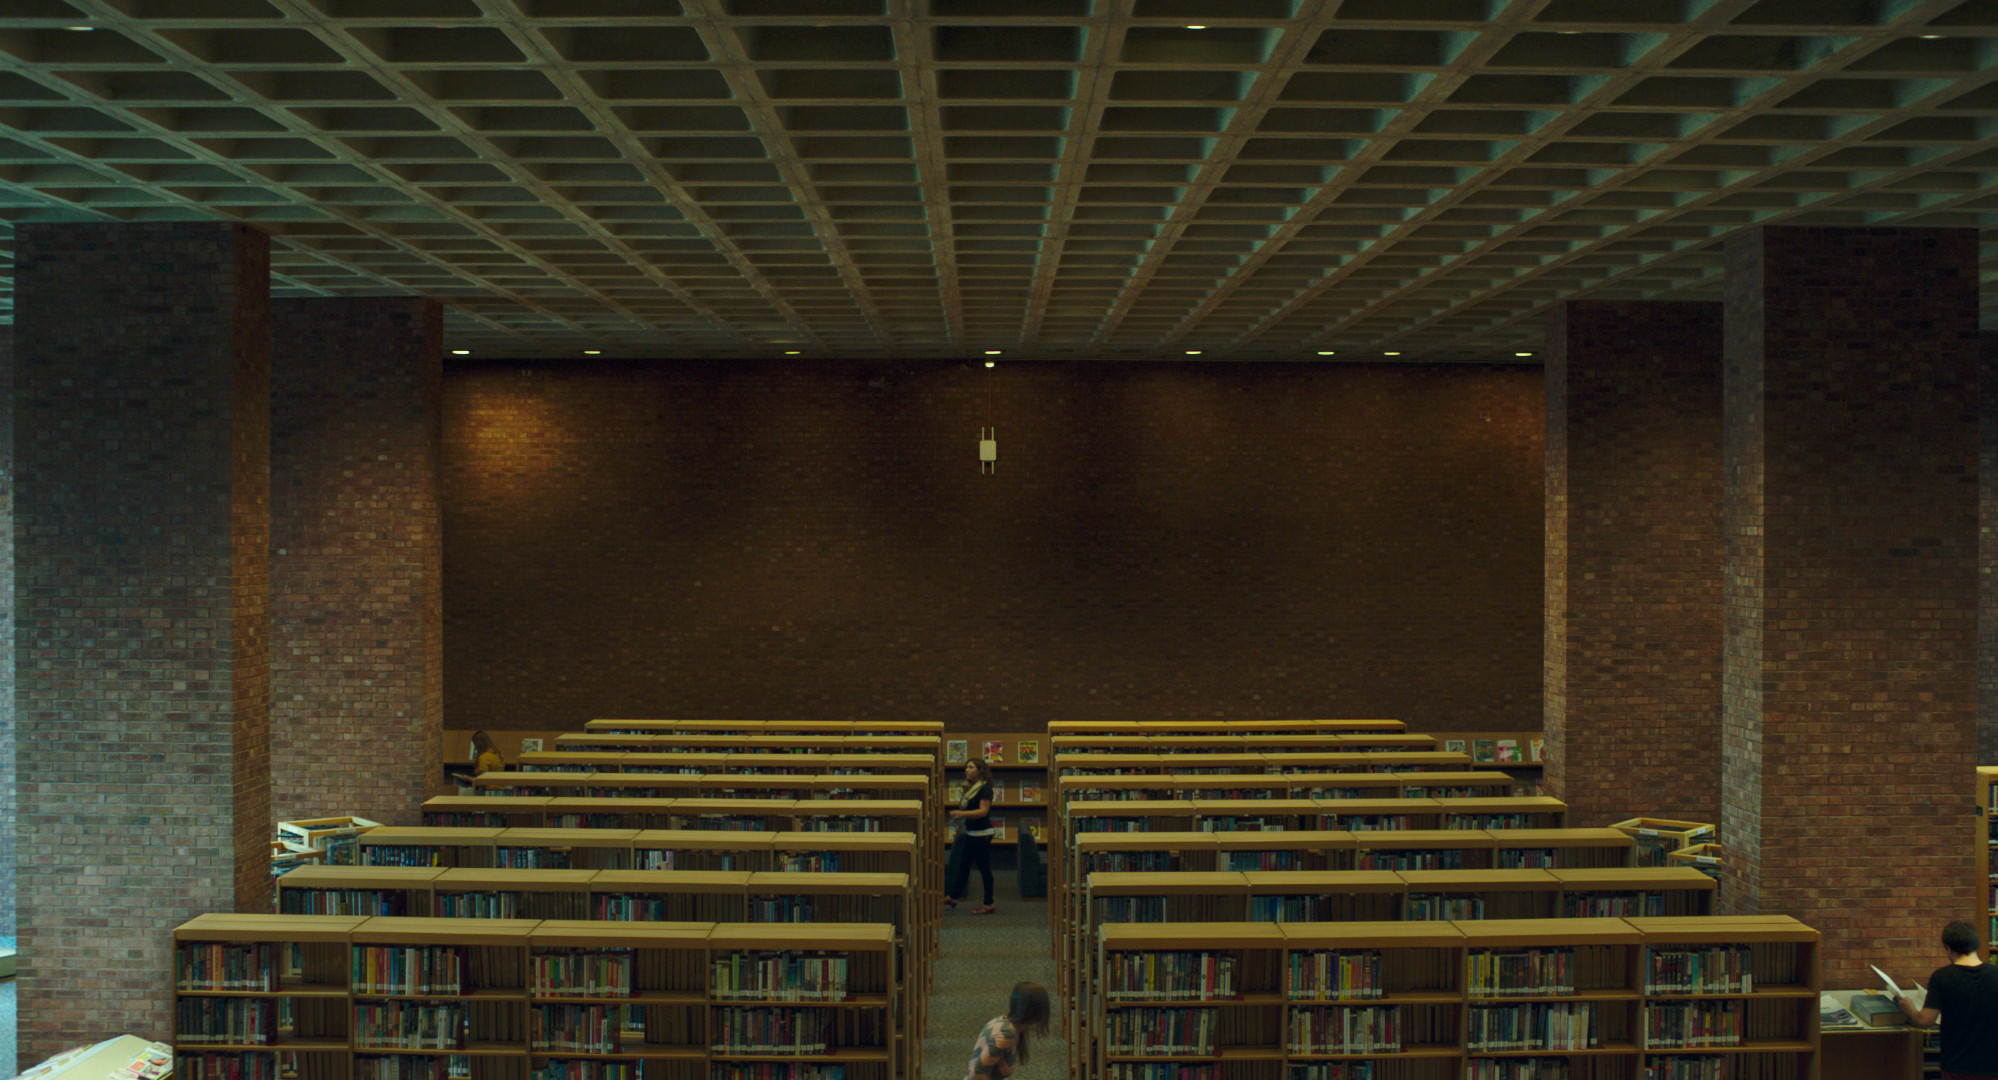 The interior of I.M. Pei's Cleo Rogers Memorial Library, which plays a significant role in